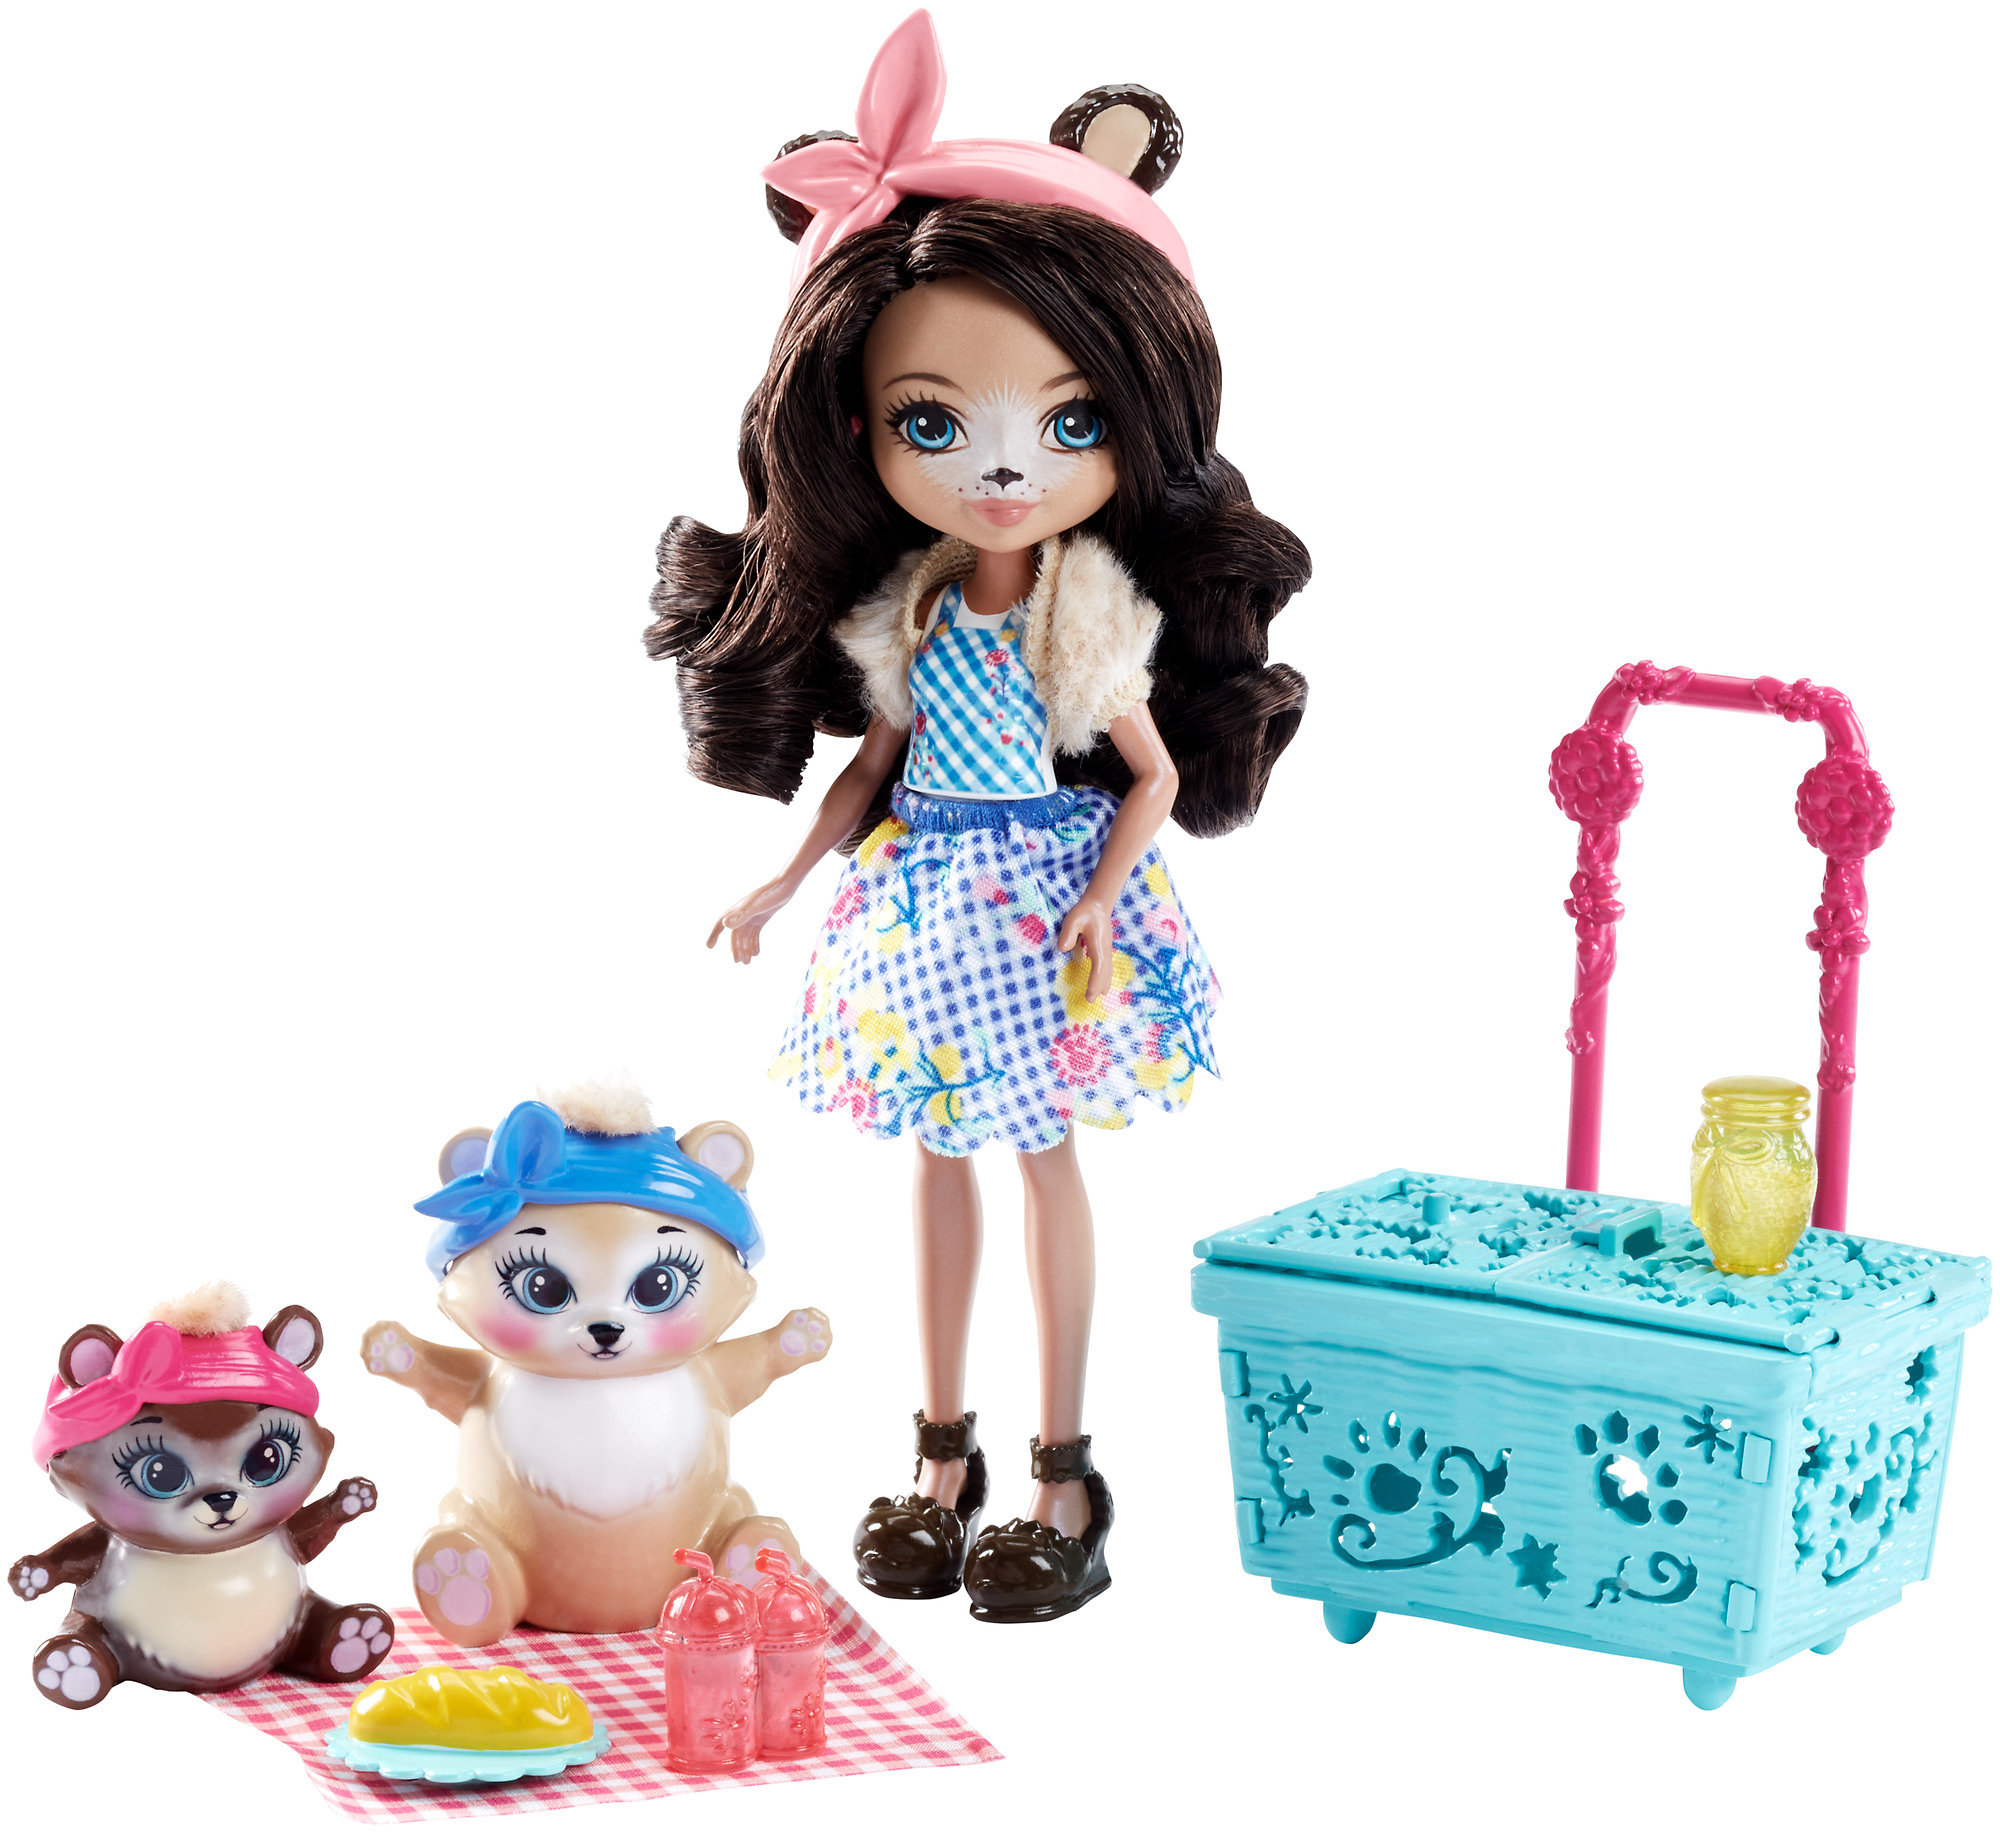 Enchantimals Paws for a Picnic Doll Set by Mattel